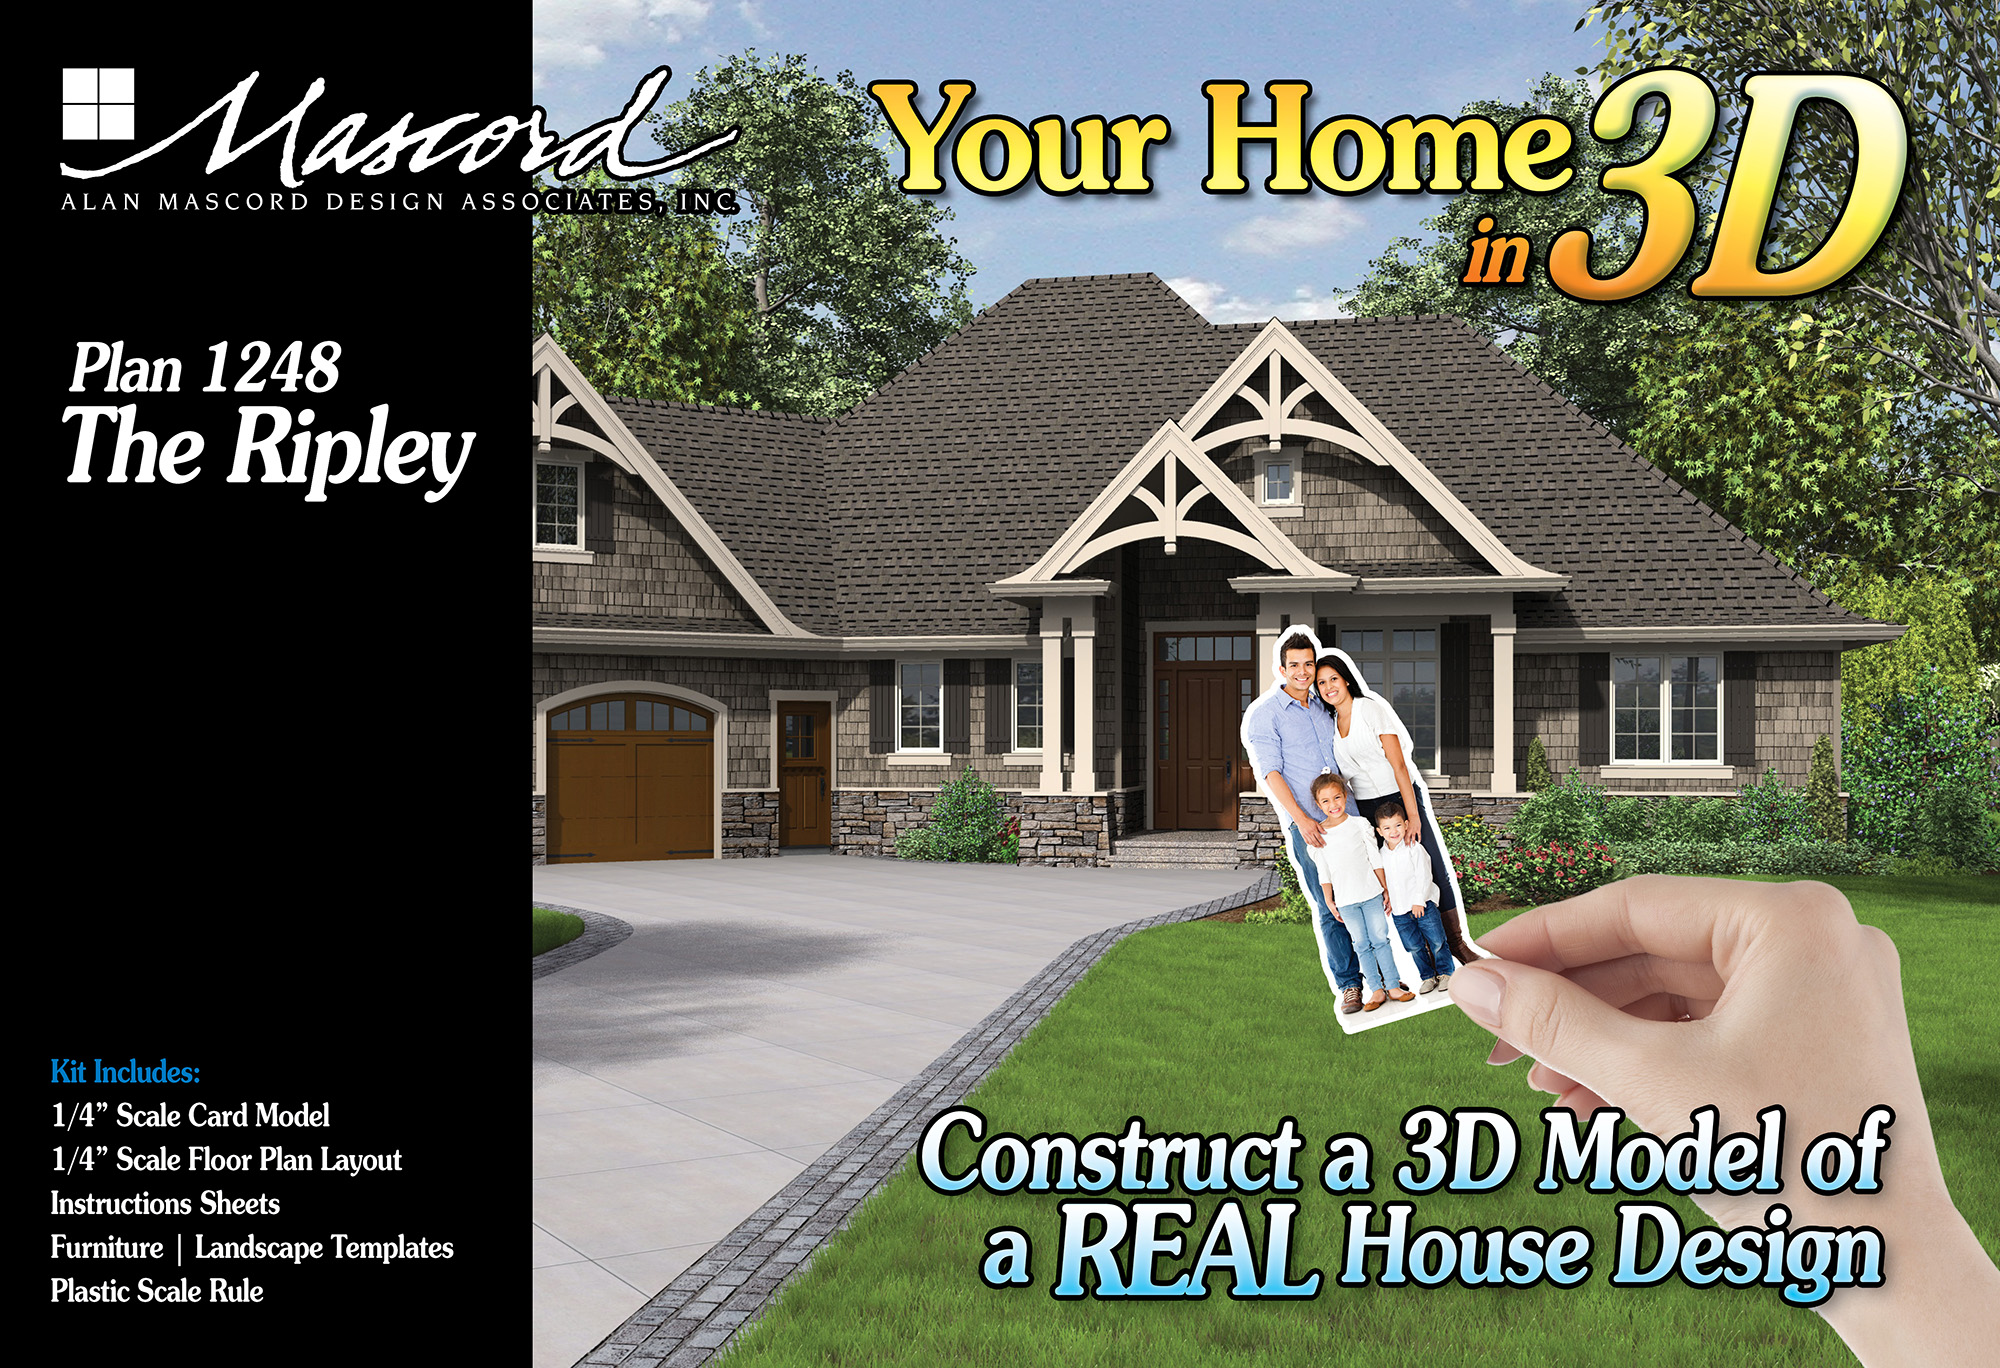 Your Home in 3D - Plan 1248